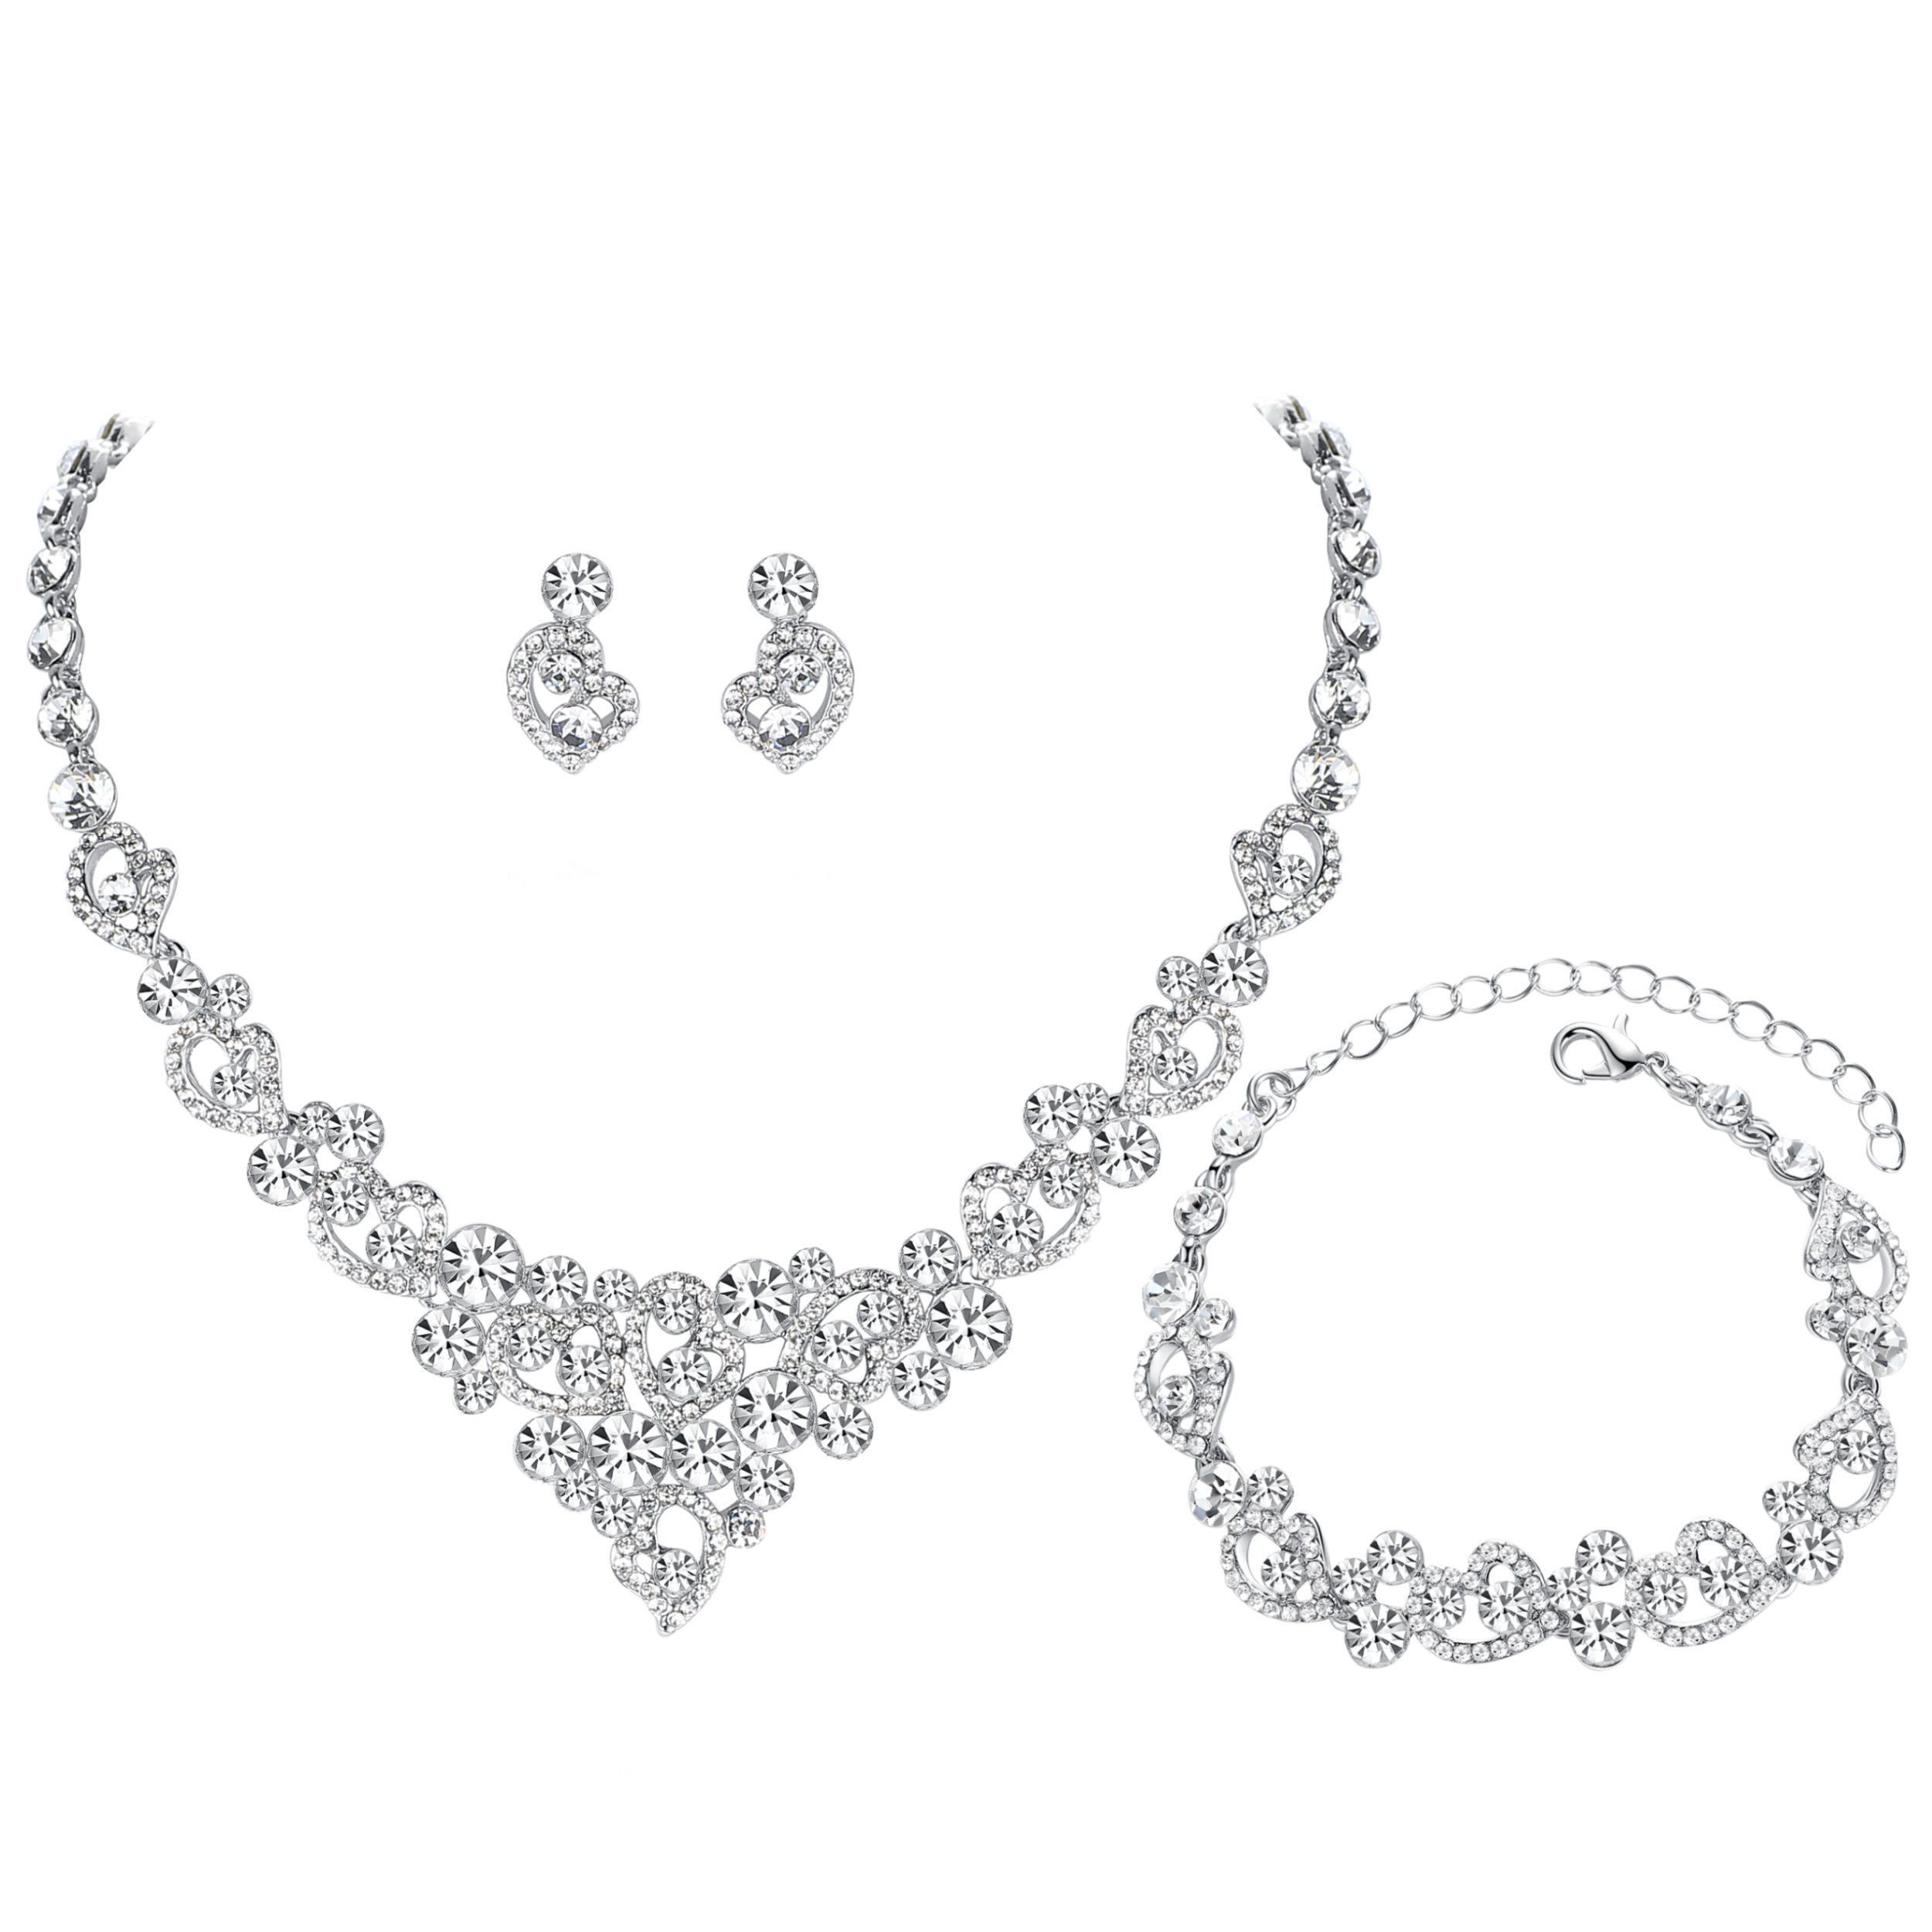 mecresh Women's Silver-tone Crystal Heart Bridal Necklace Set Bracelet Dangle Earrings